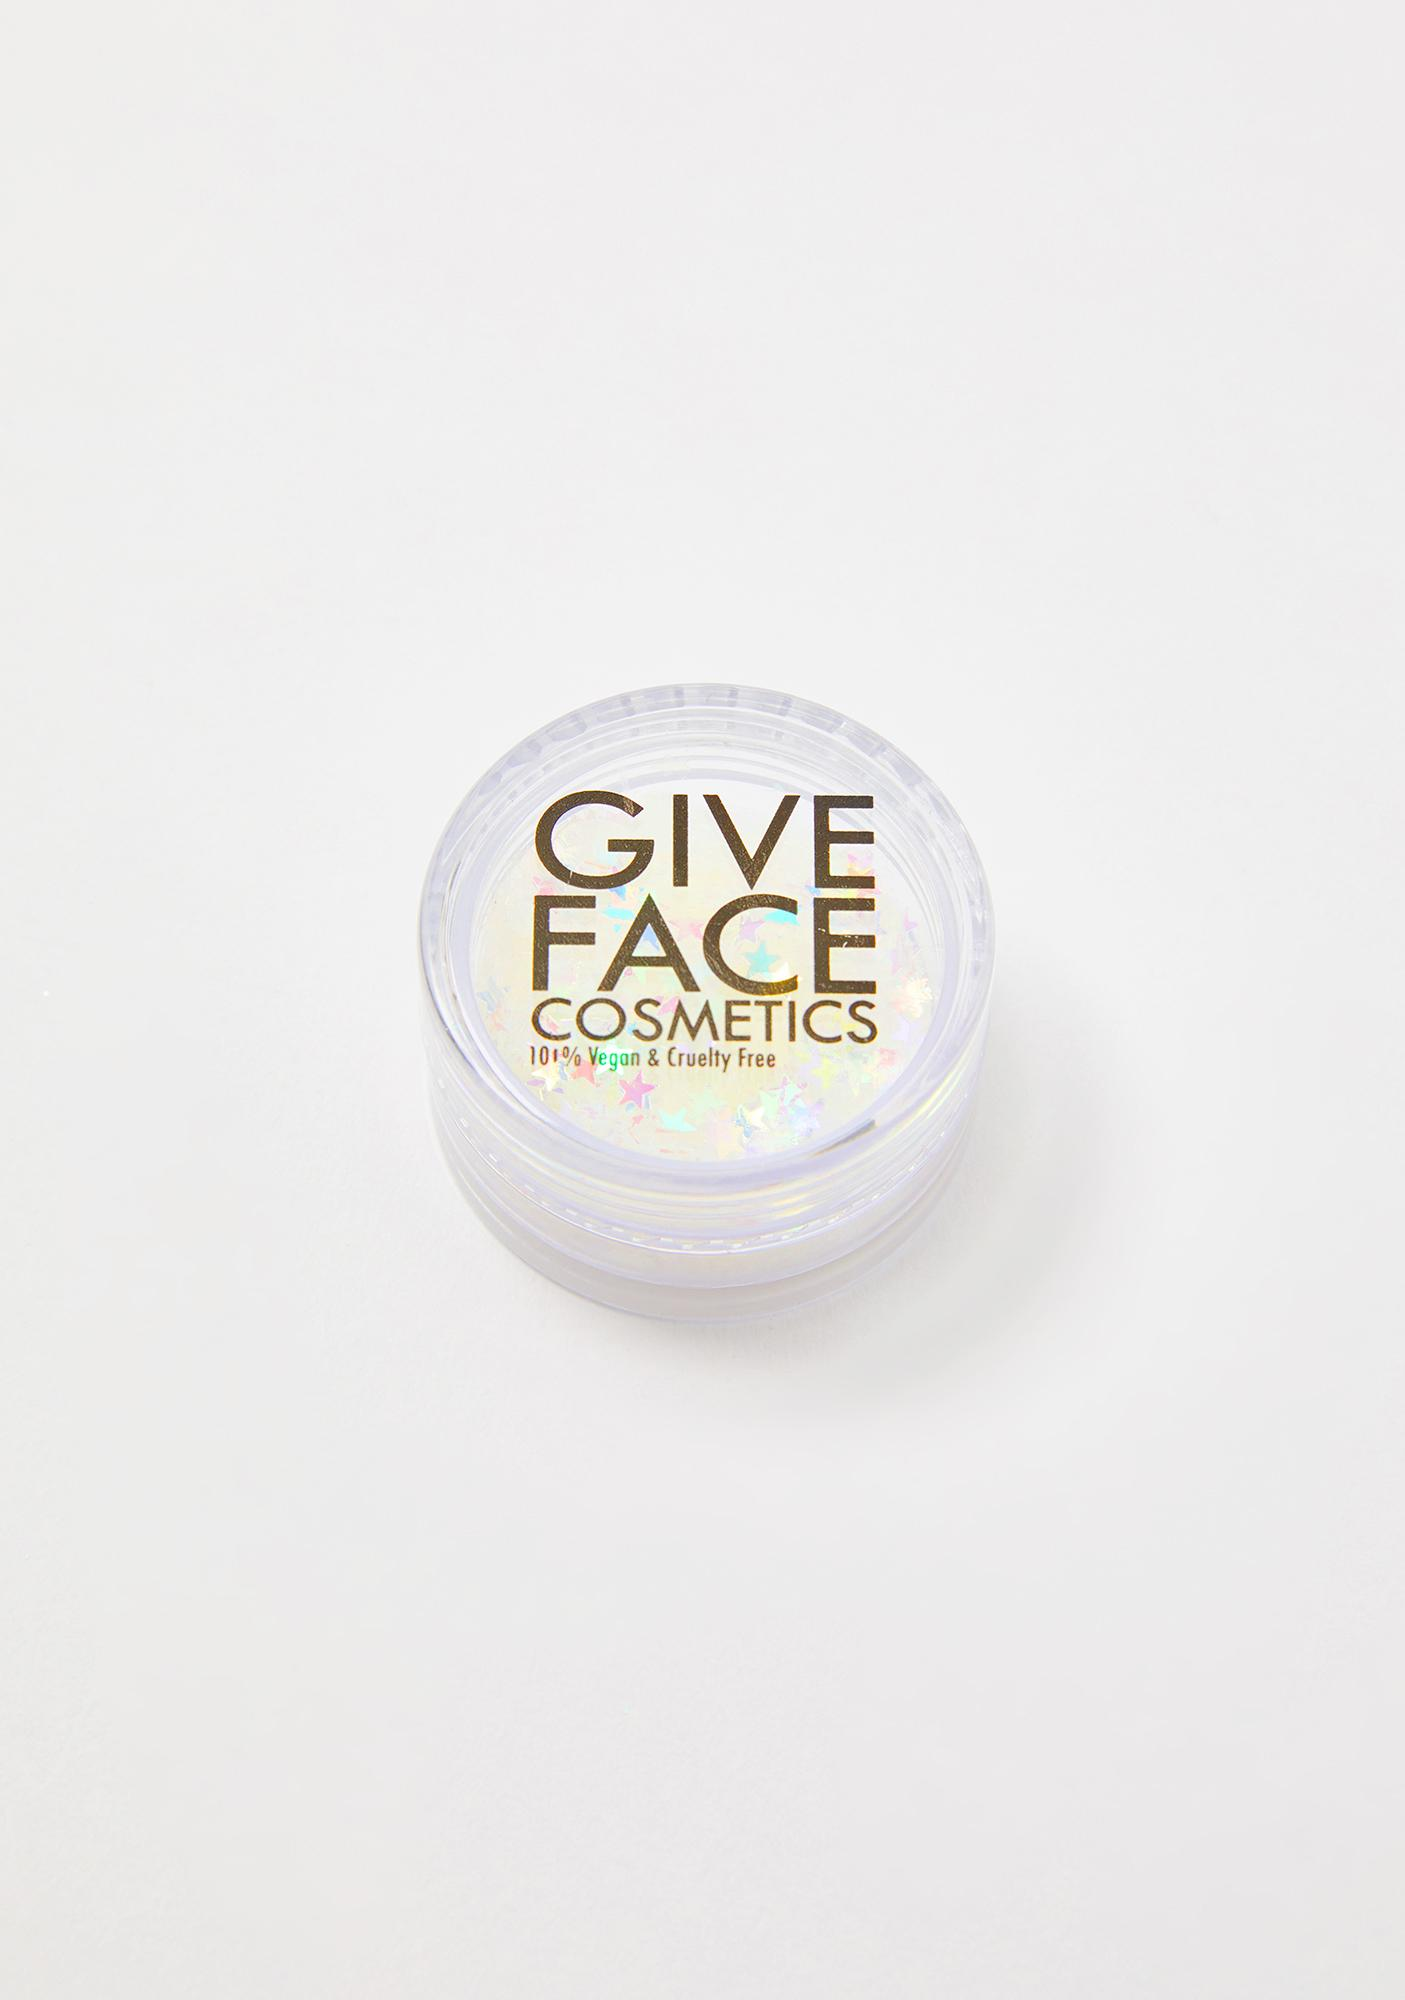 Give Face Cosmetics Orion Star Poly Shapes Iridescent Glitter